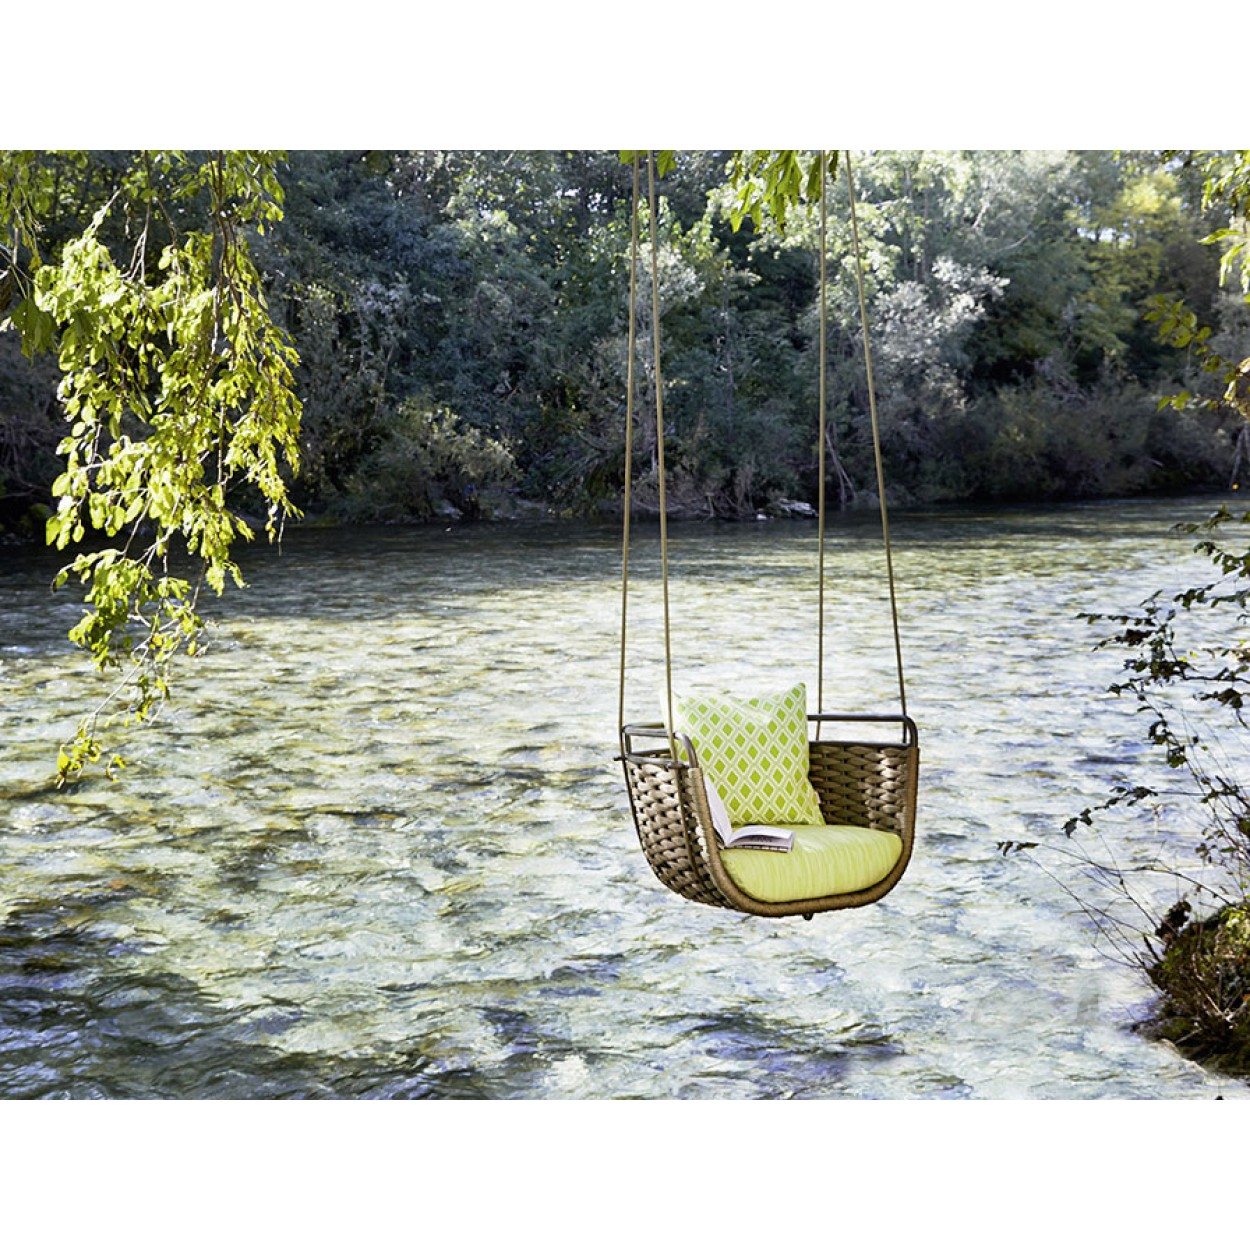 CUSTOM SIZE PORTOFINO SWING FOR CRUISE